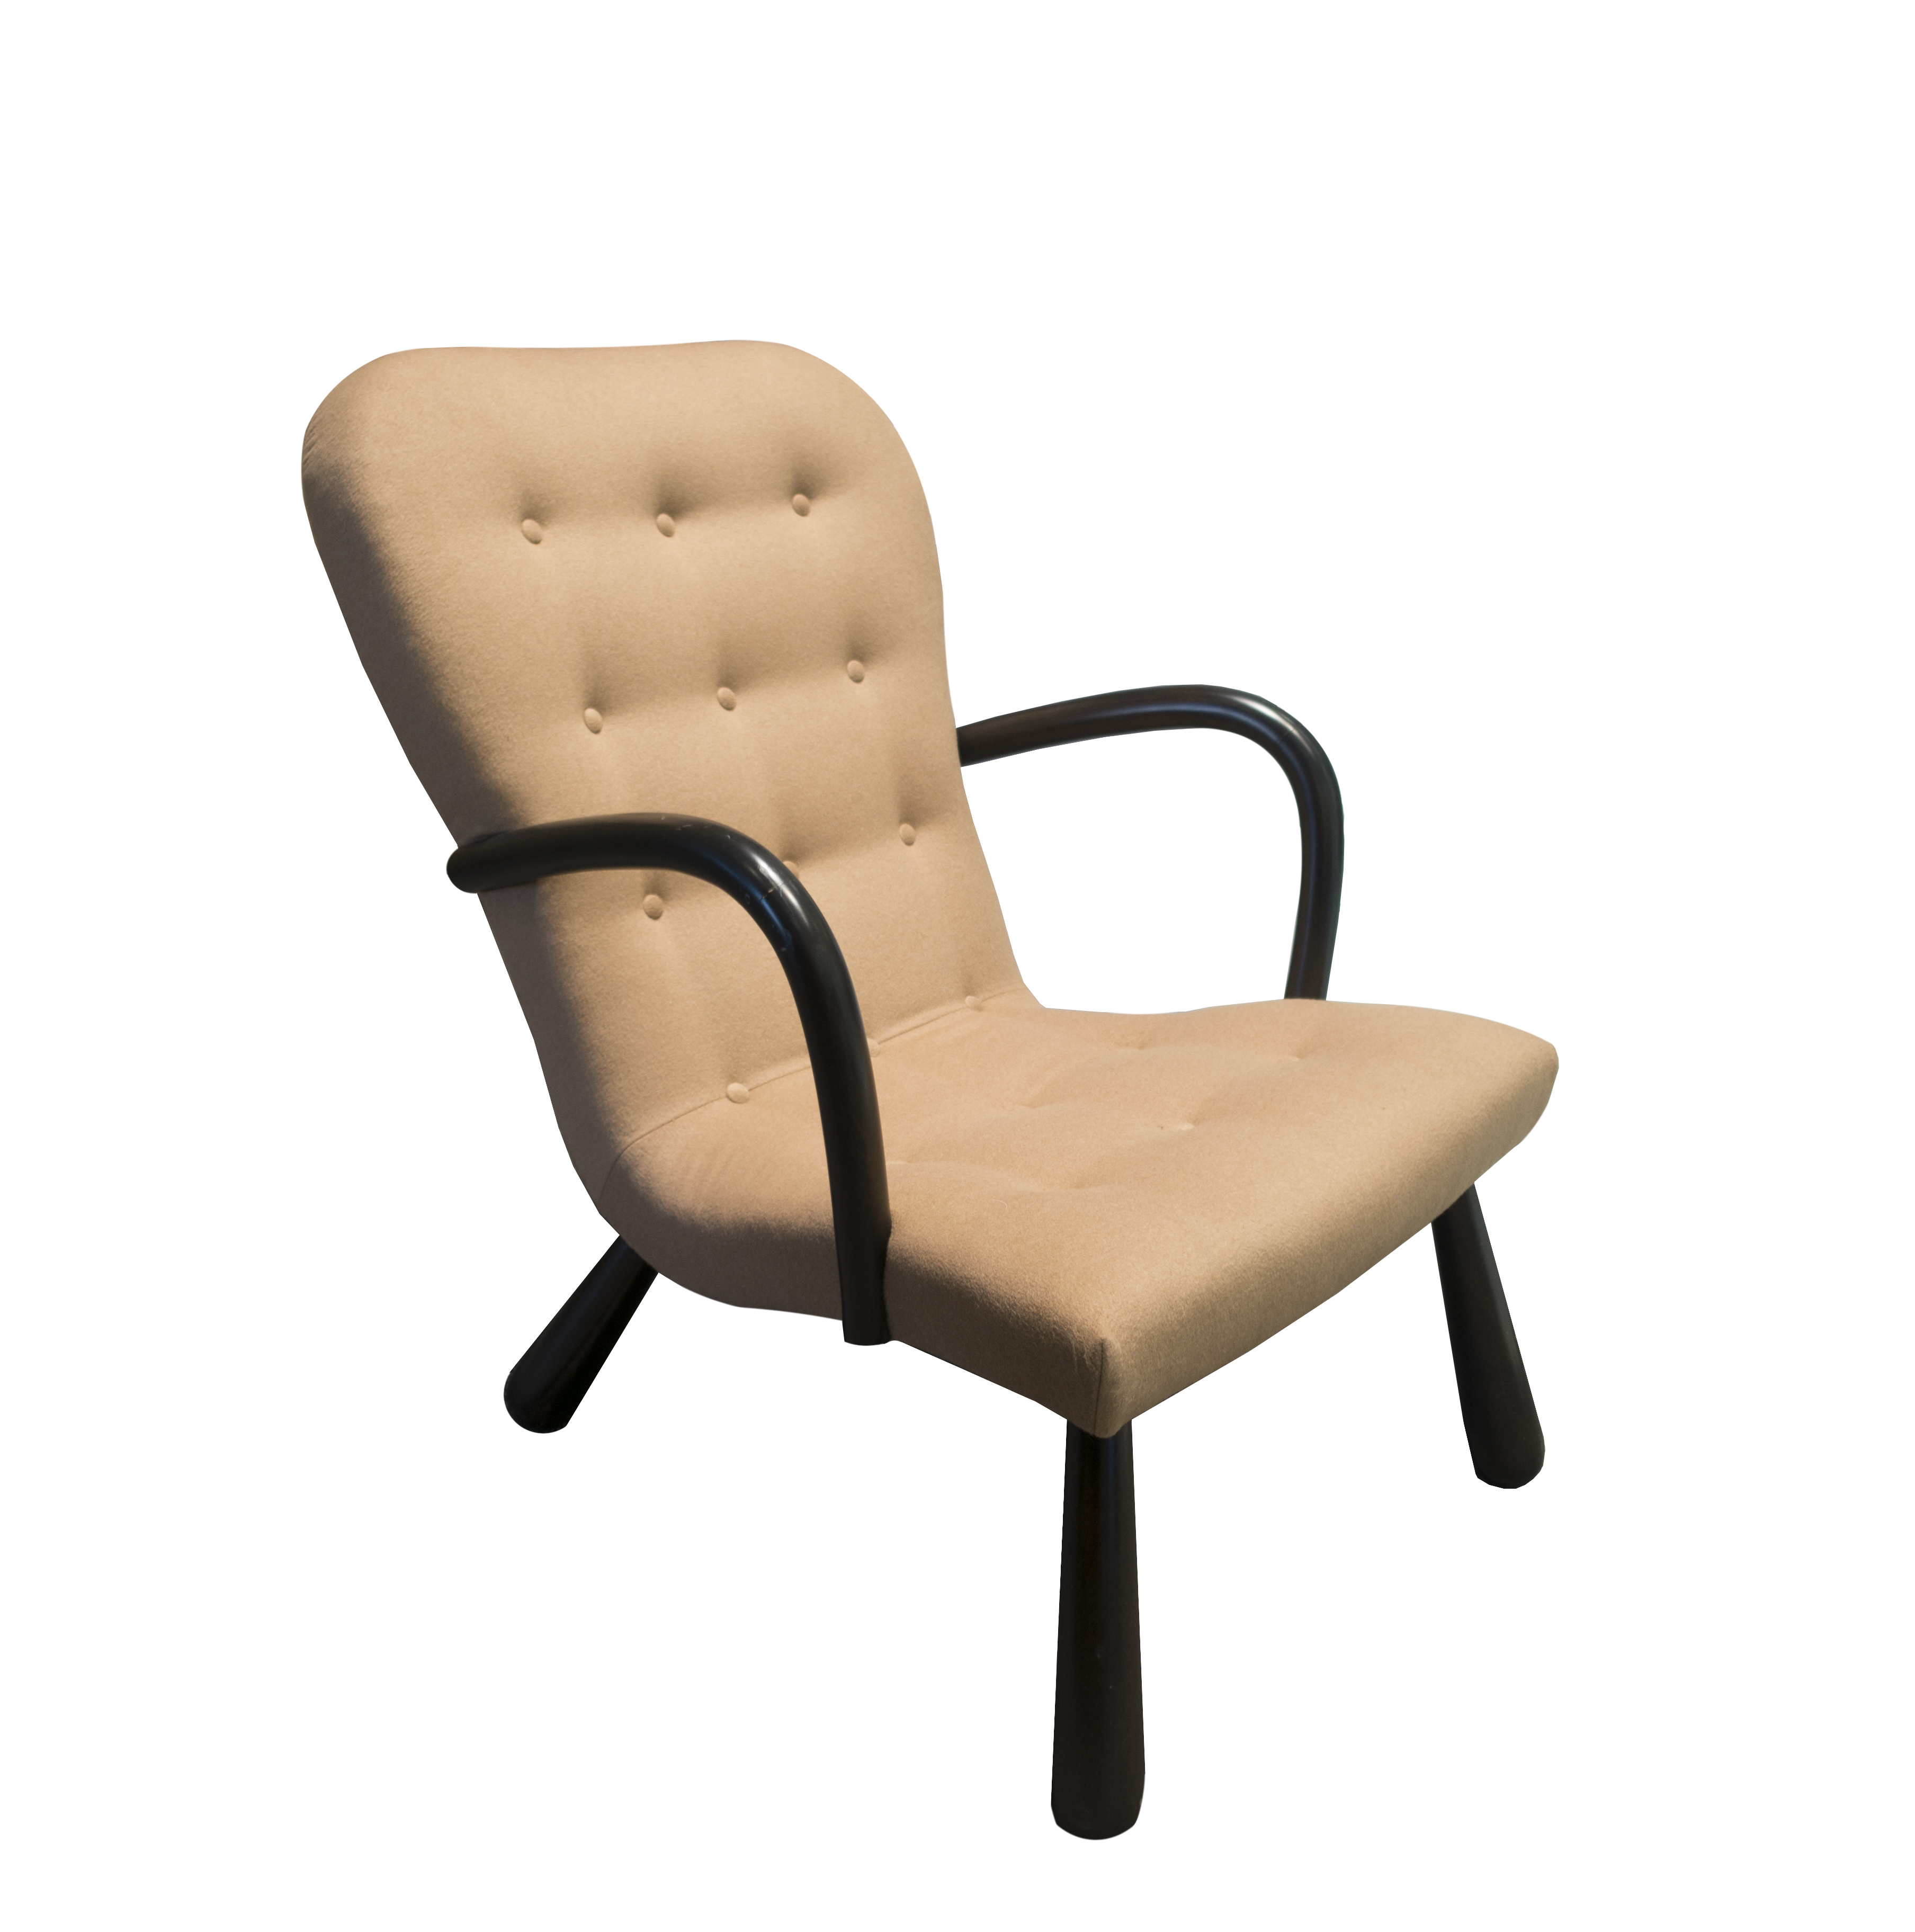 t brown Image 10_clam chair 2